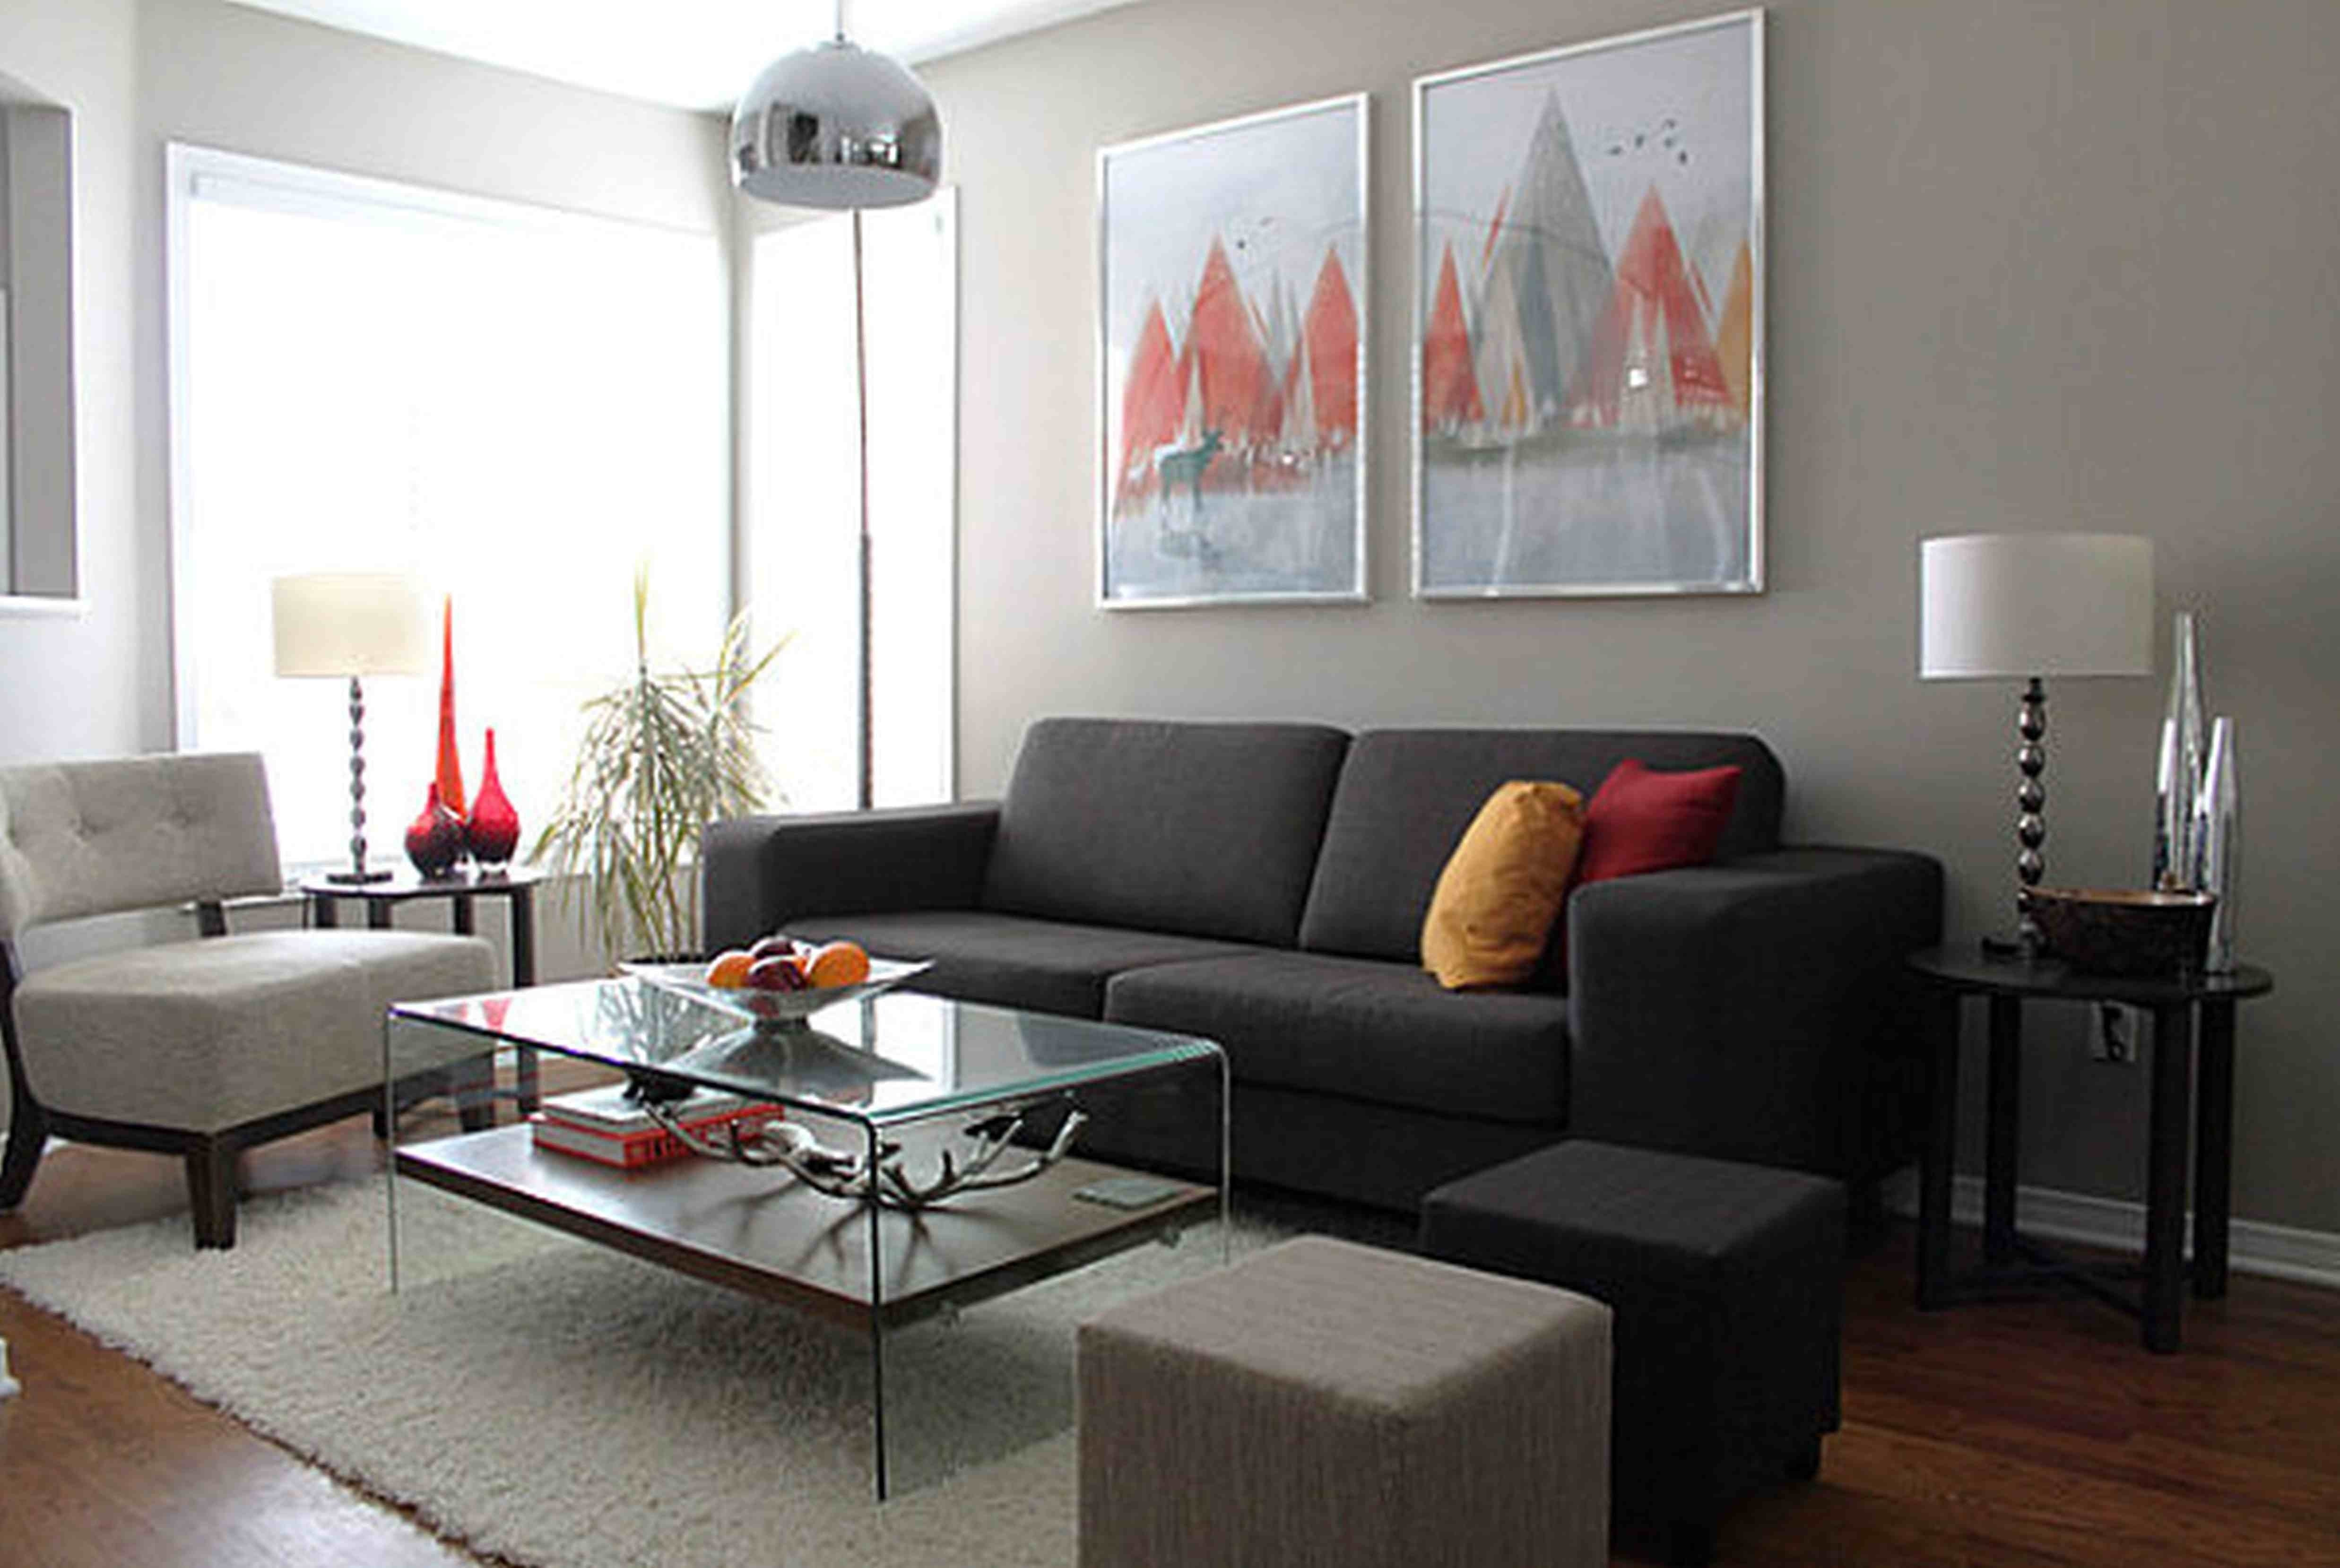 10 Lovely Small Living Room Furniture Ideas small sofas for living rooms room furniture ideas design and simple 2020